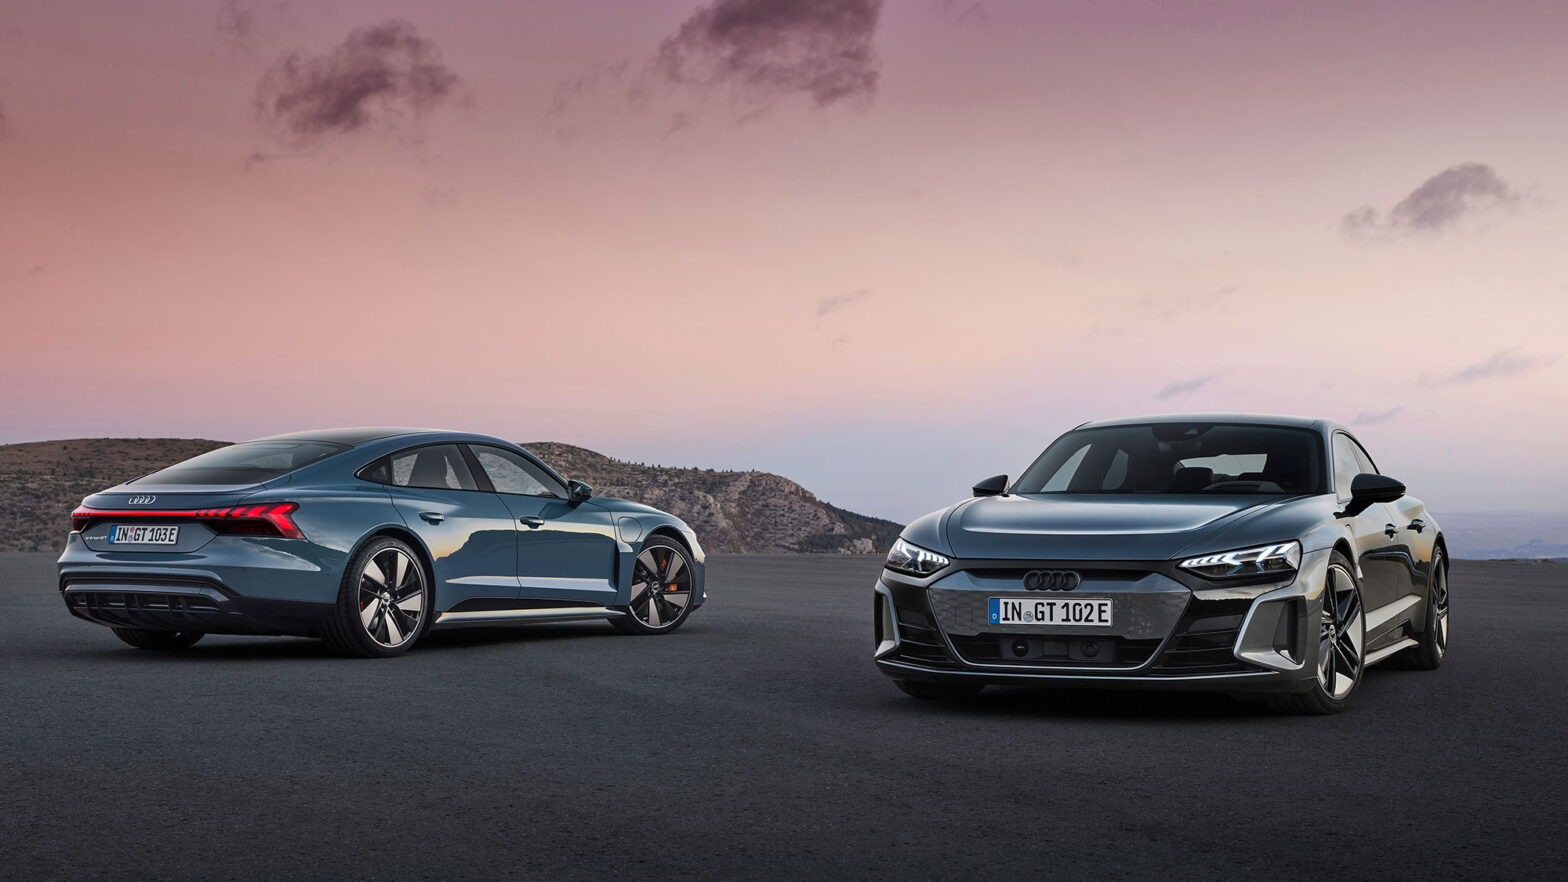 2022 Audi e-tron GT and RS e-tron GT EV